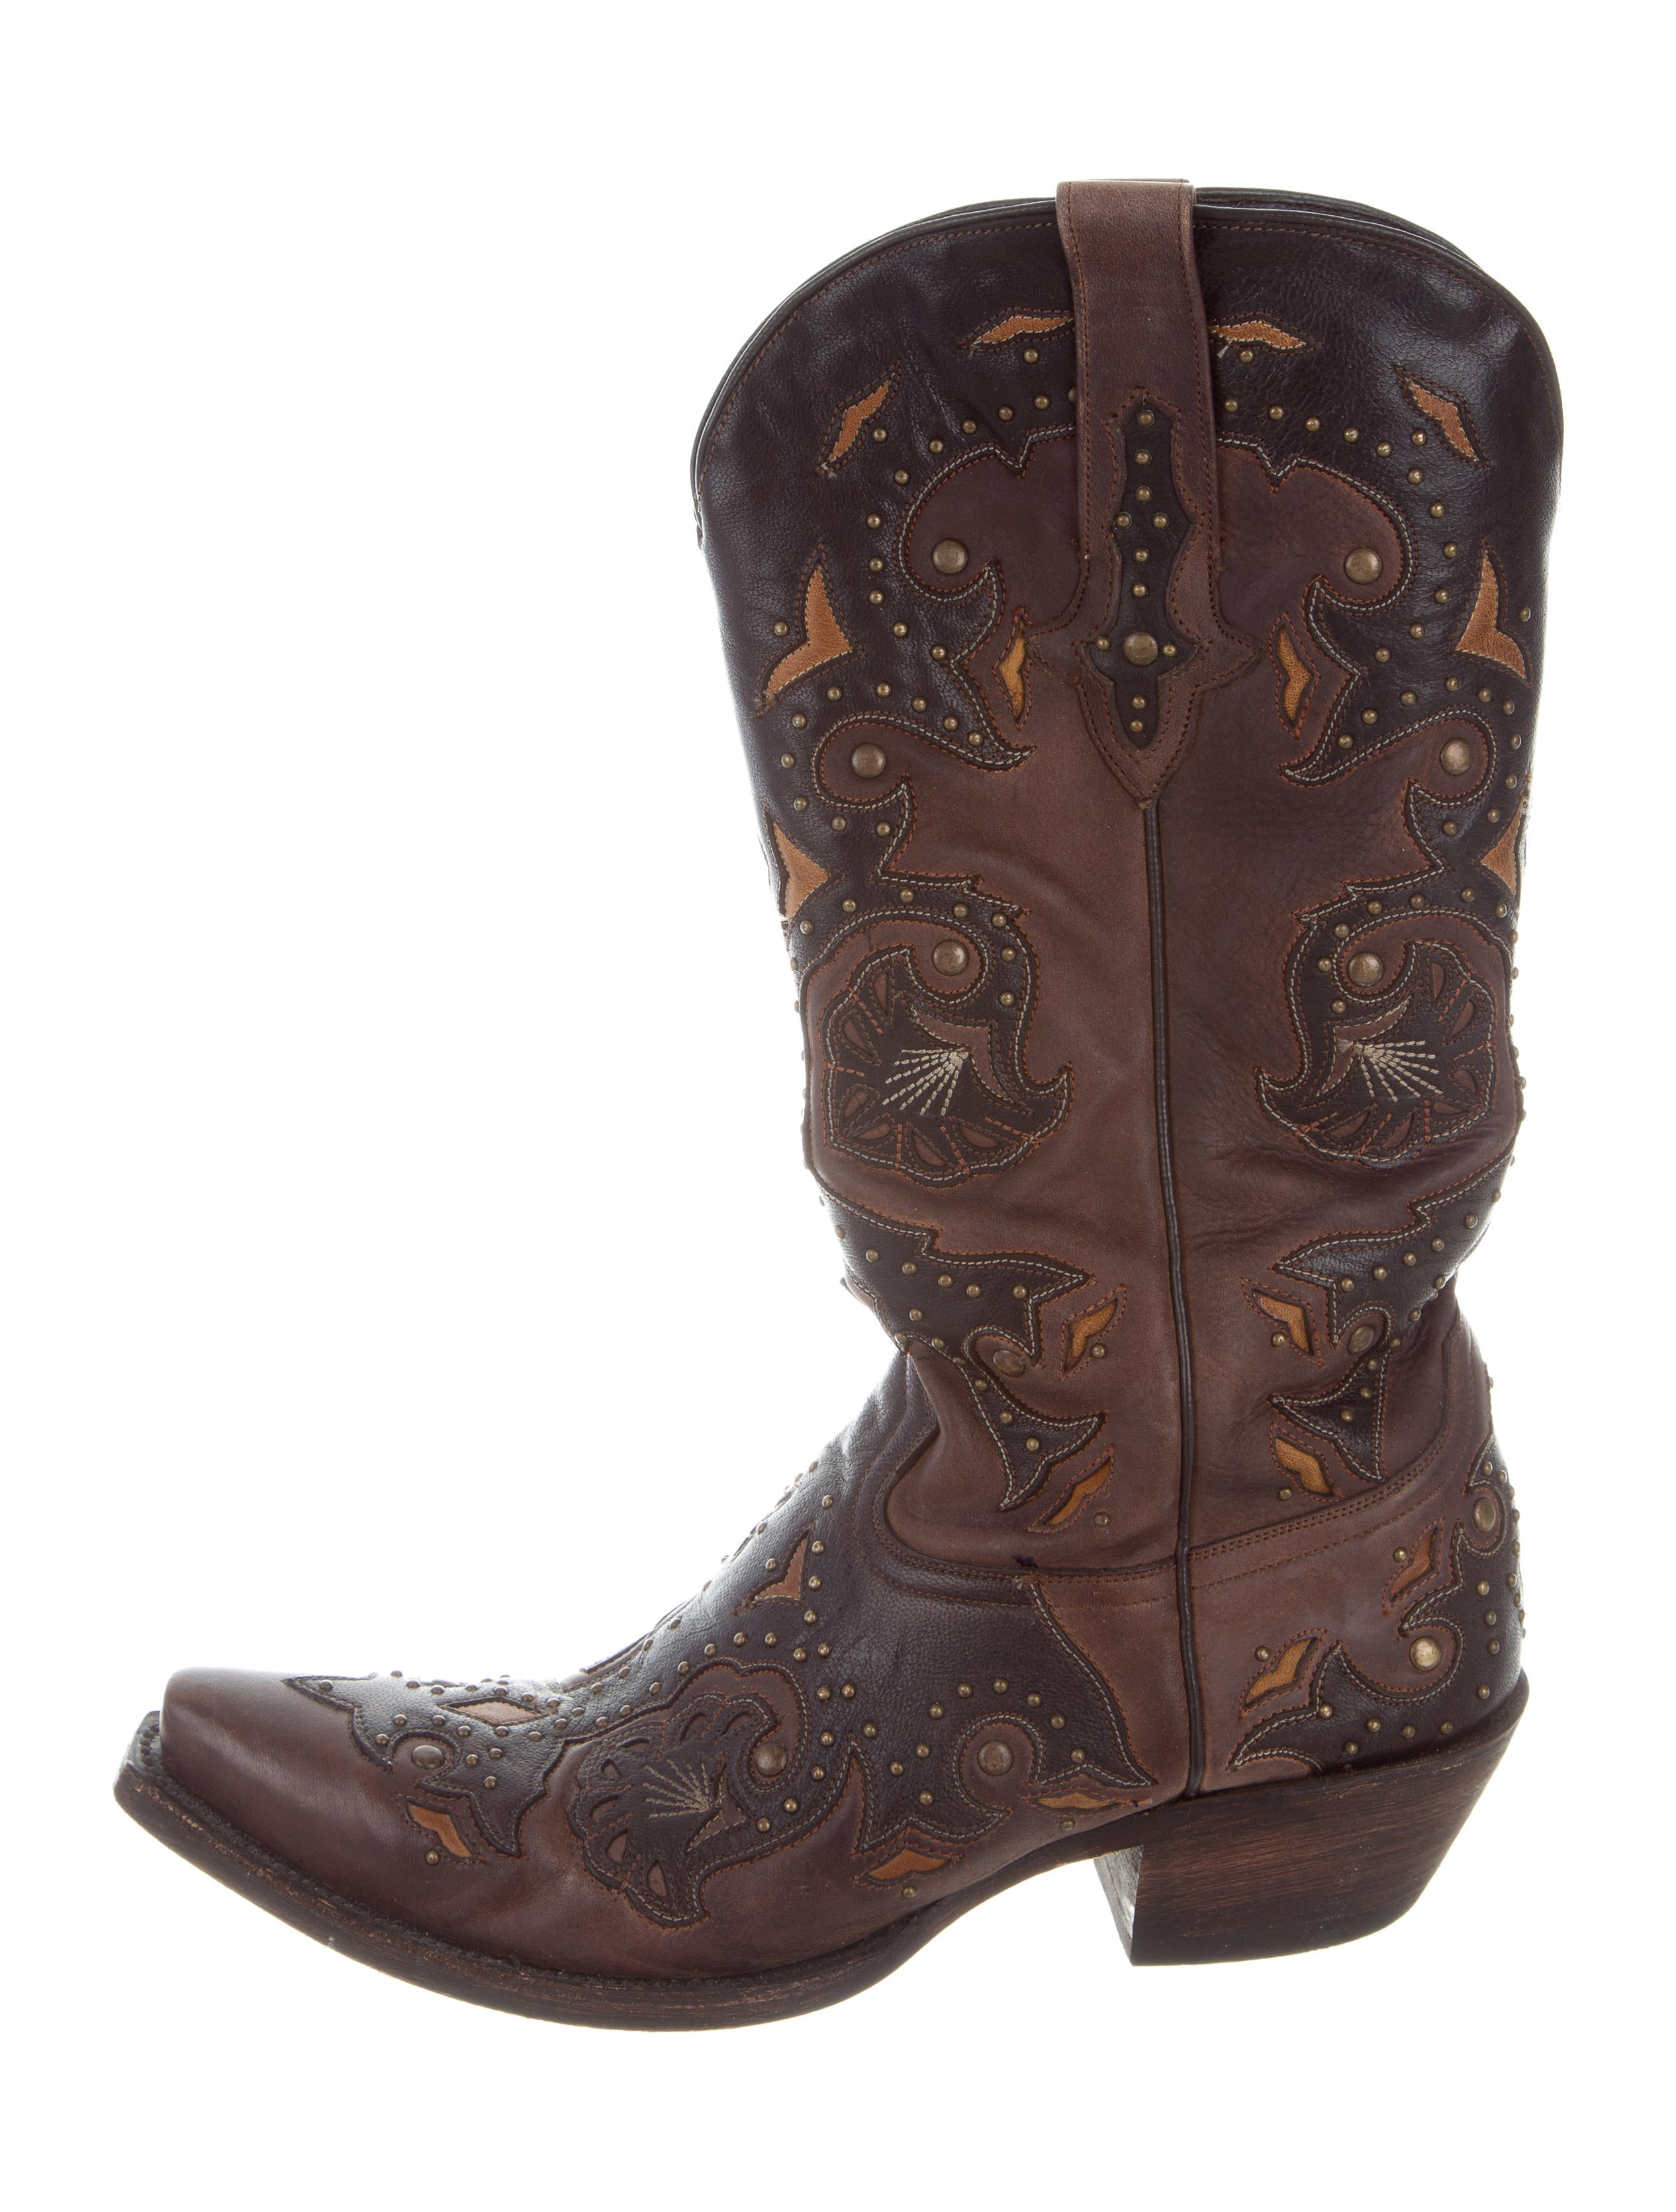 Lucchese Leather Cowboy Boots Shoes Lcc20037 The